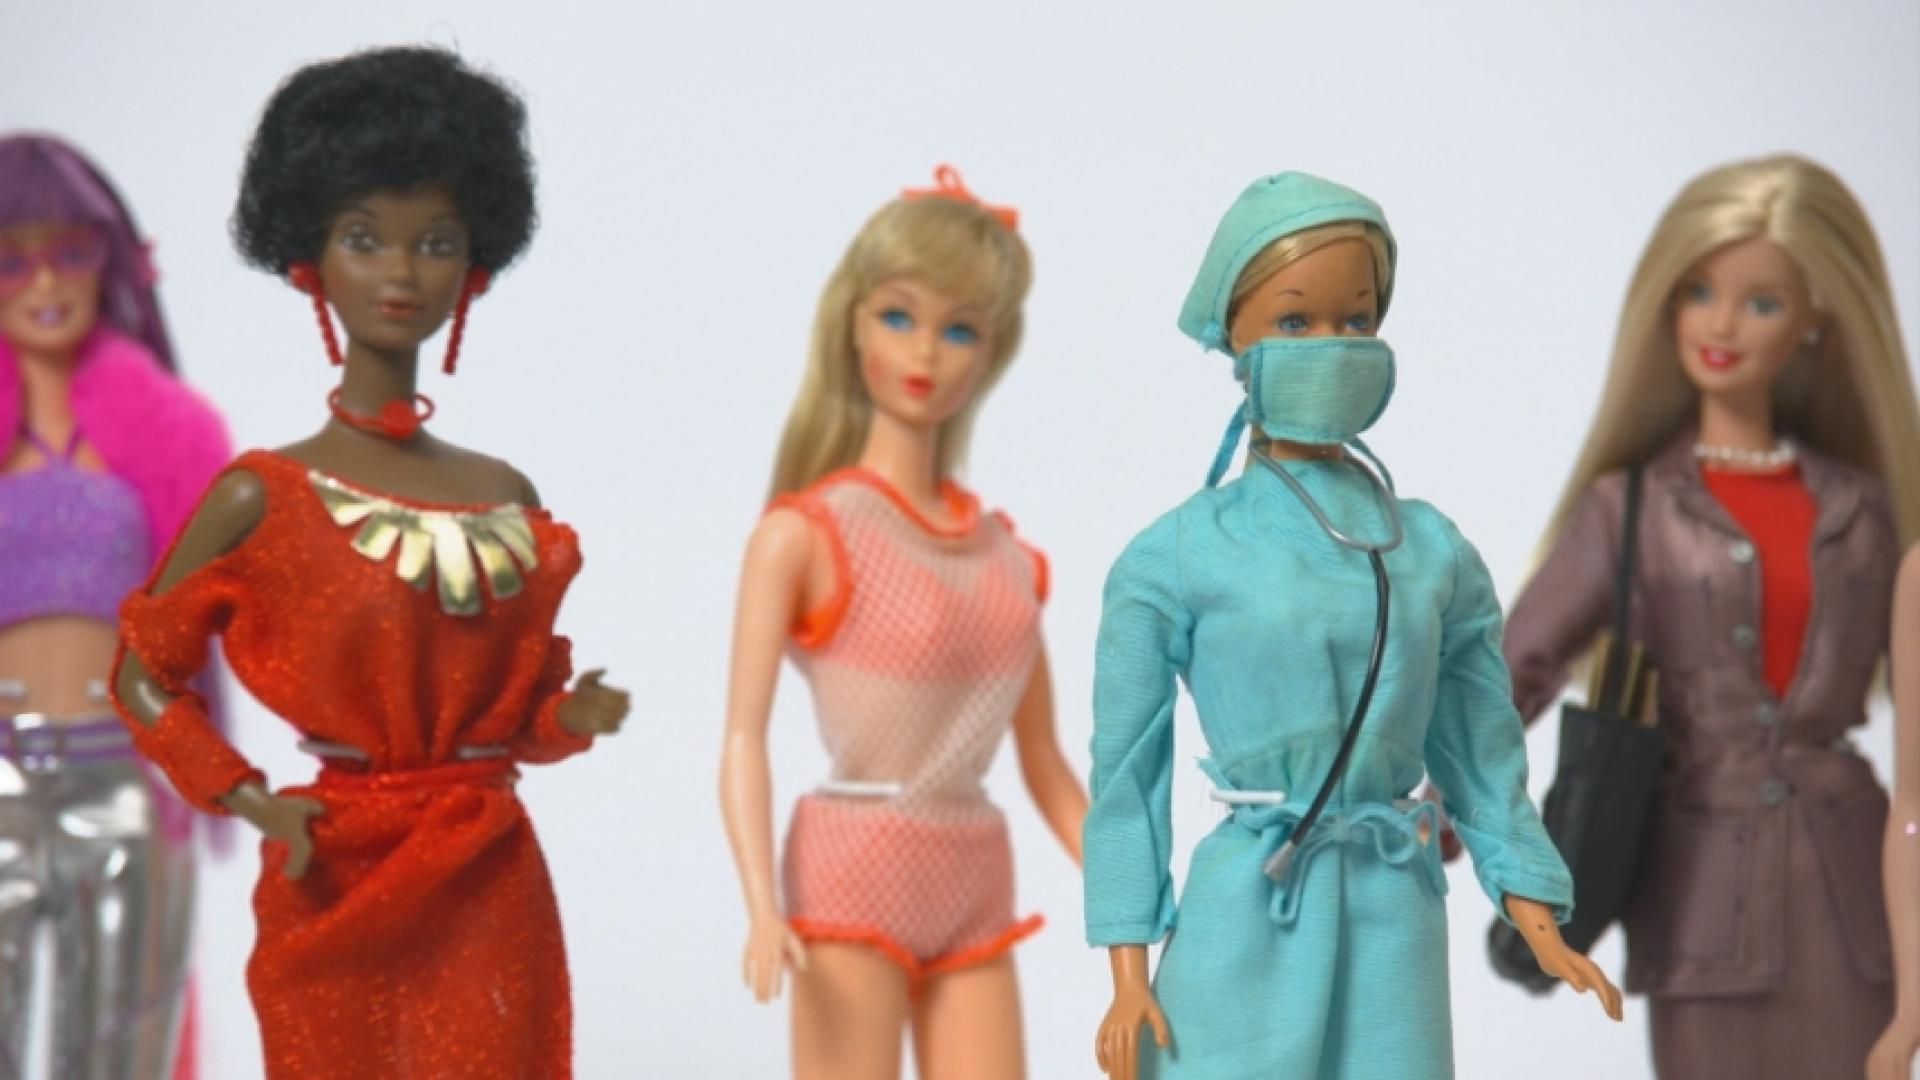 Barbie Turns 60 And Continues To Perform